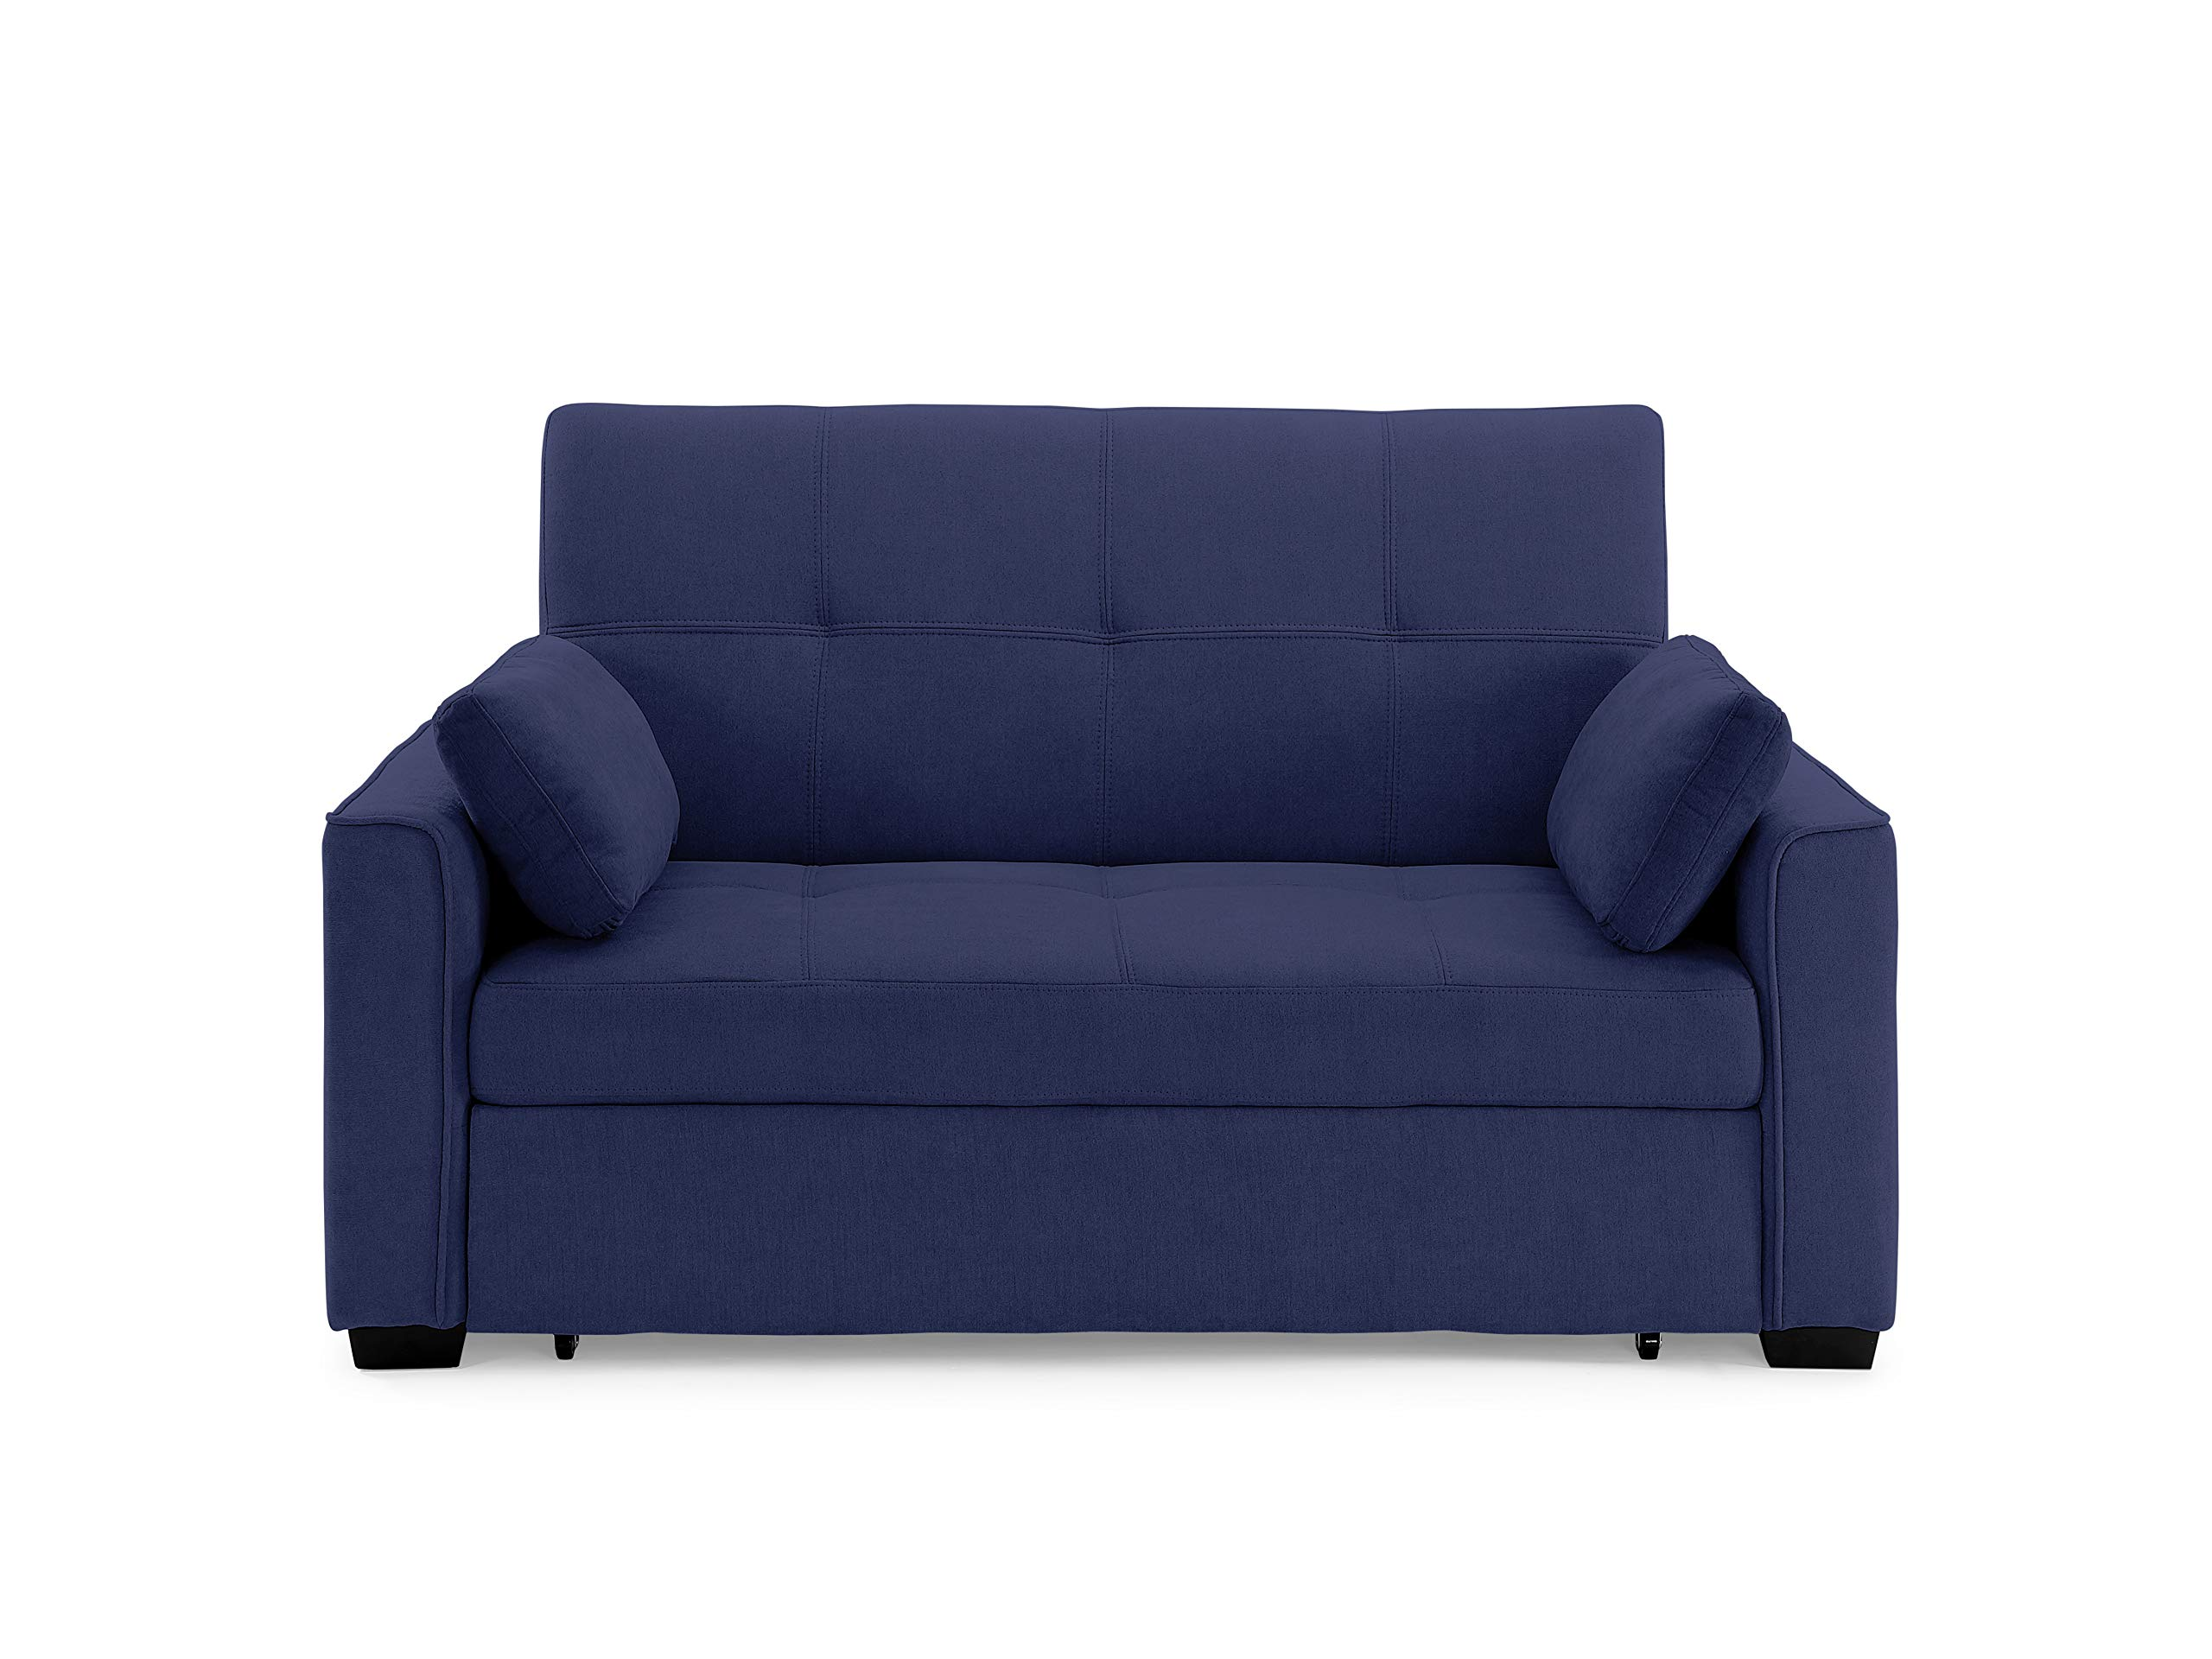 Night & Day Furniture NANTUCKET FULL NAVY Sofabed, Blue by Night & Day Furniture